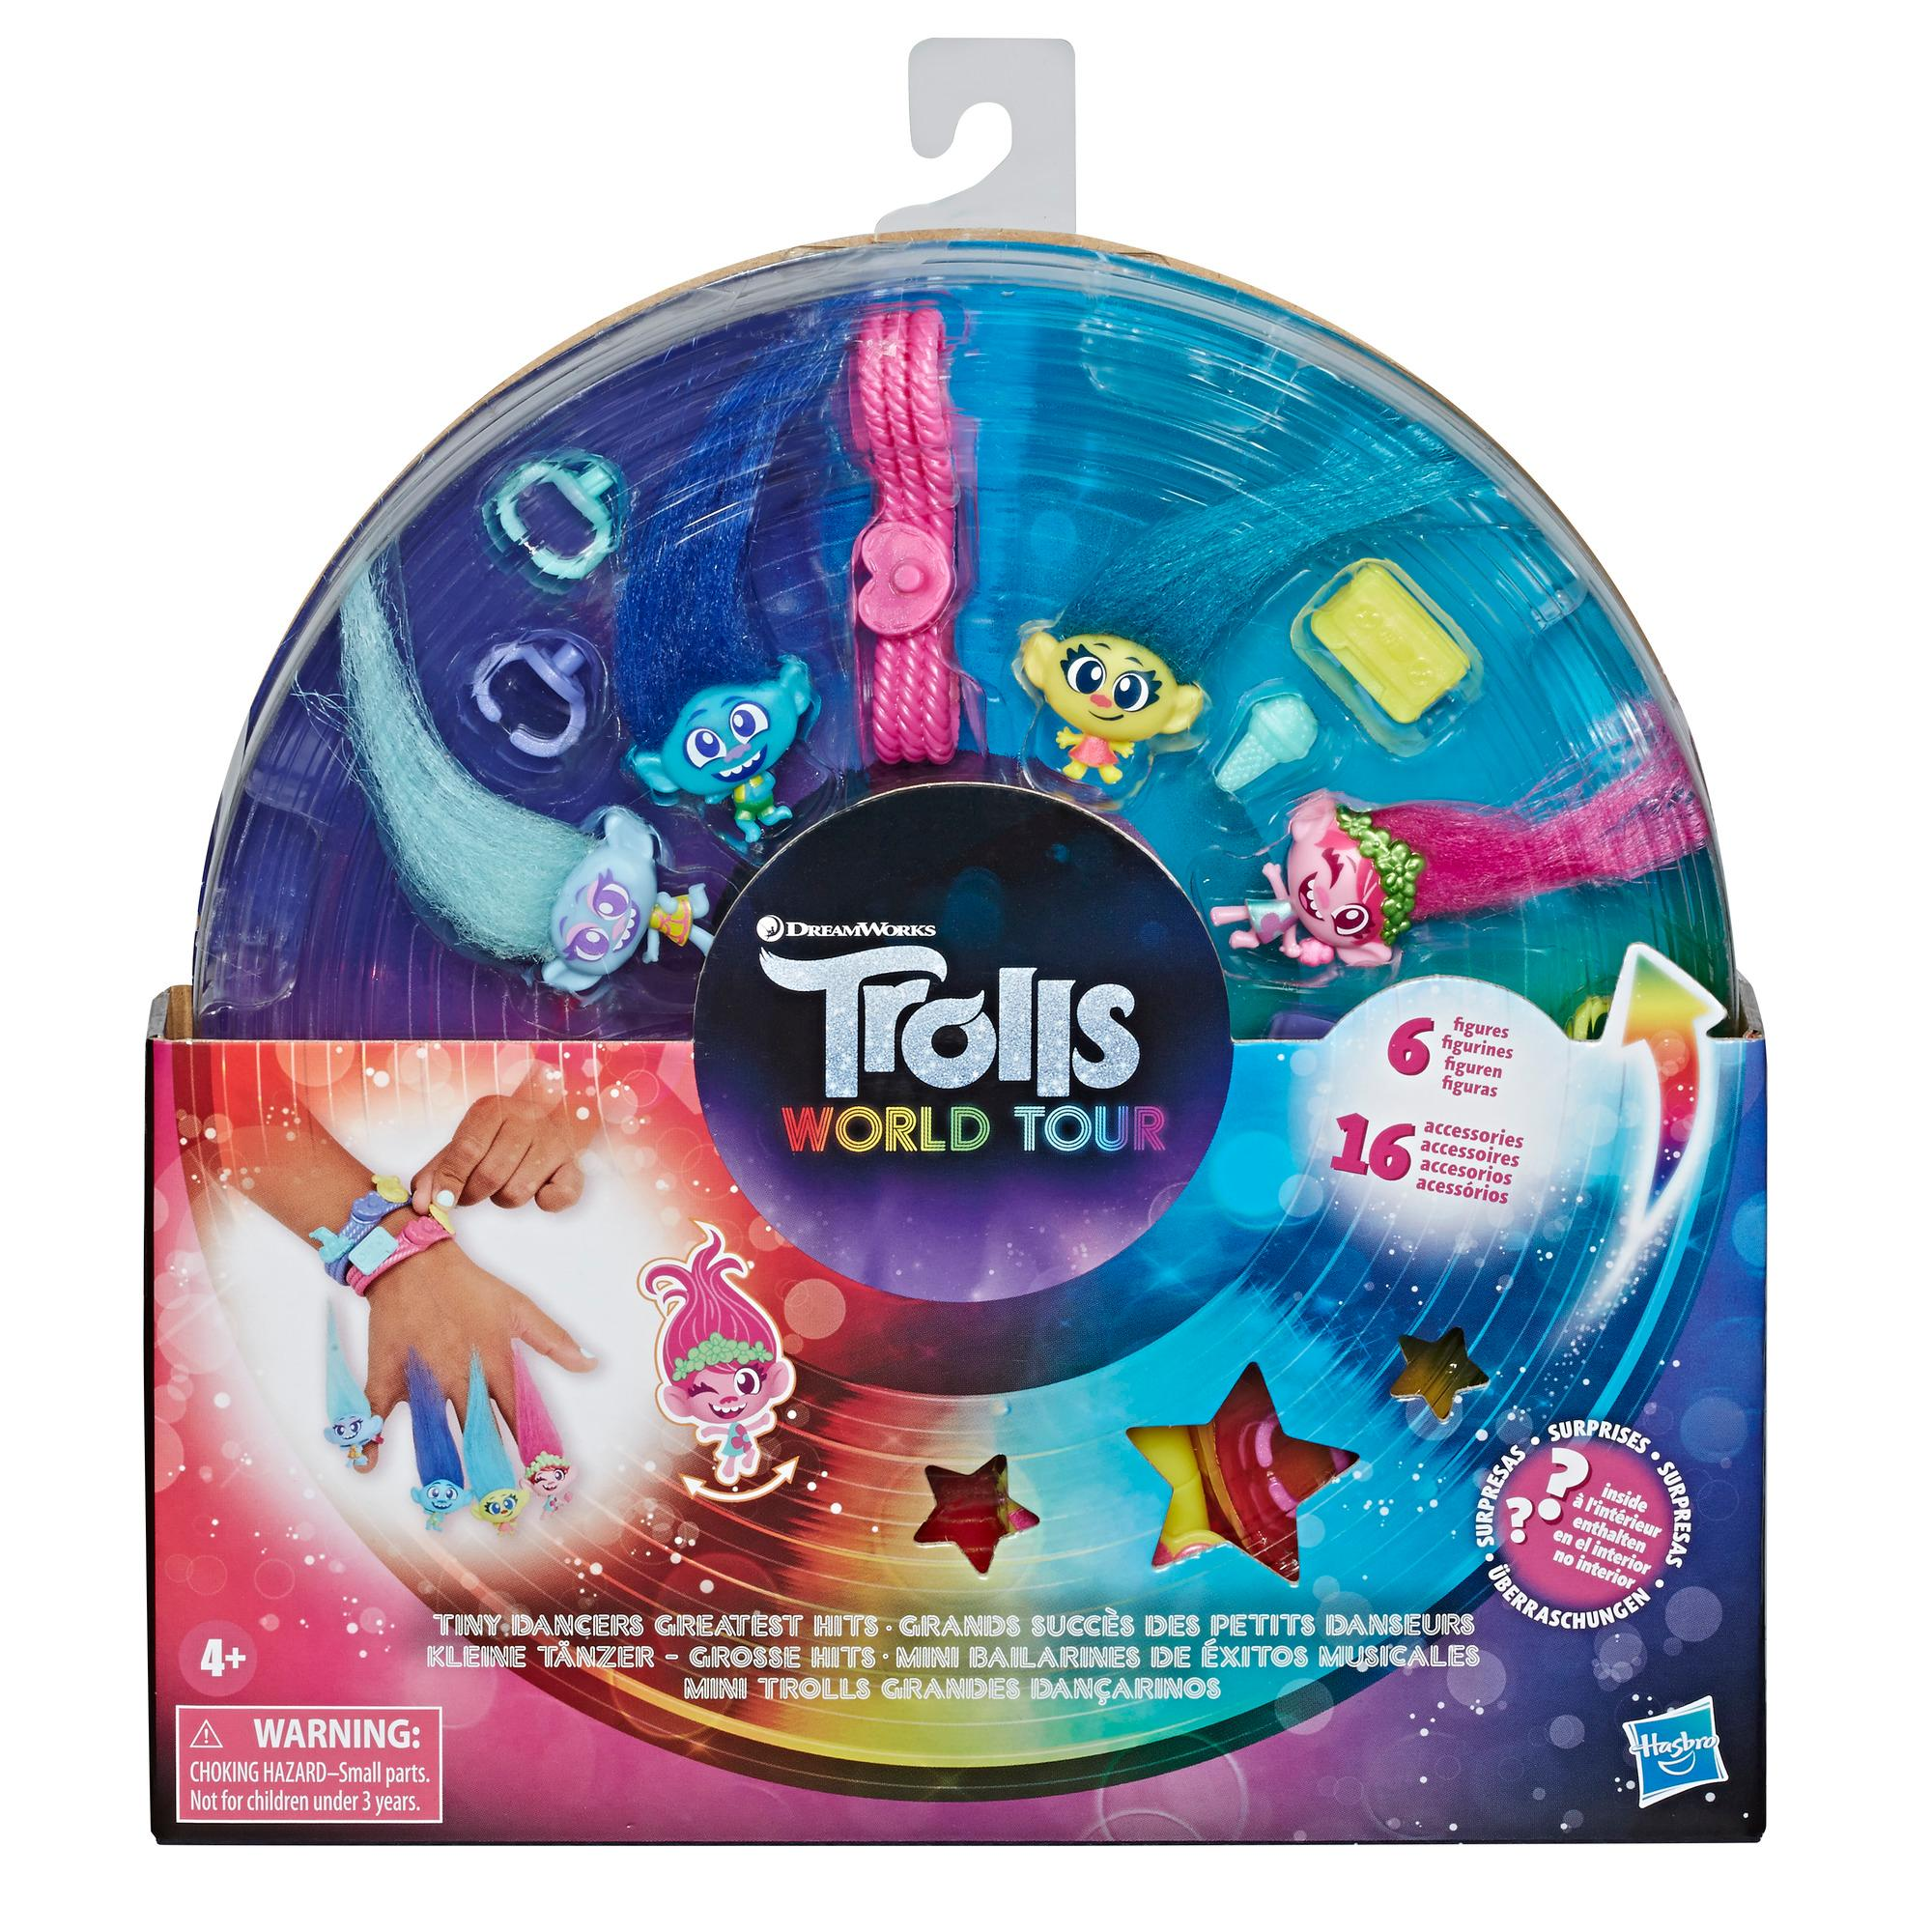 DreamWorks Trolls Tiny Dancers Greatest Hits, Toy with 6 Collector Figures, Necklace, 2 Bracelets, and More